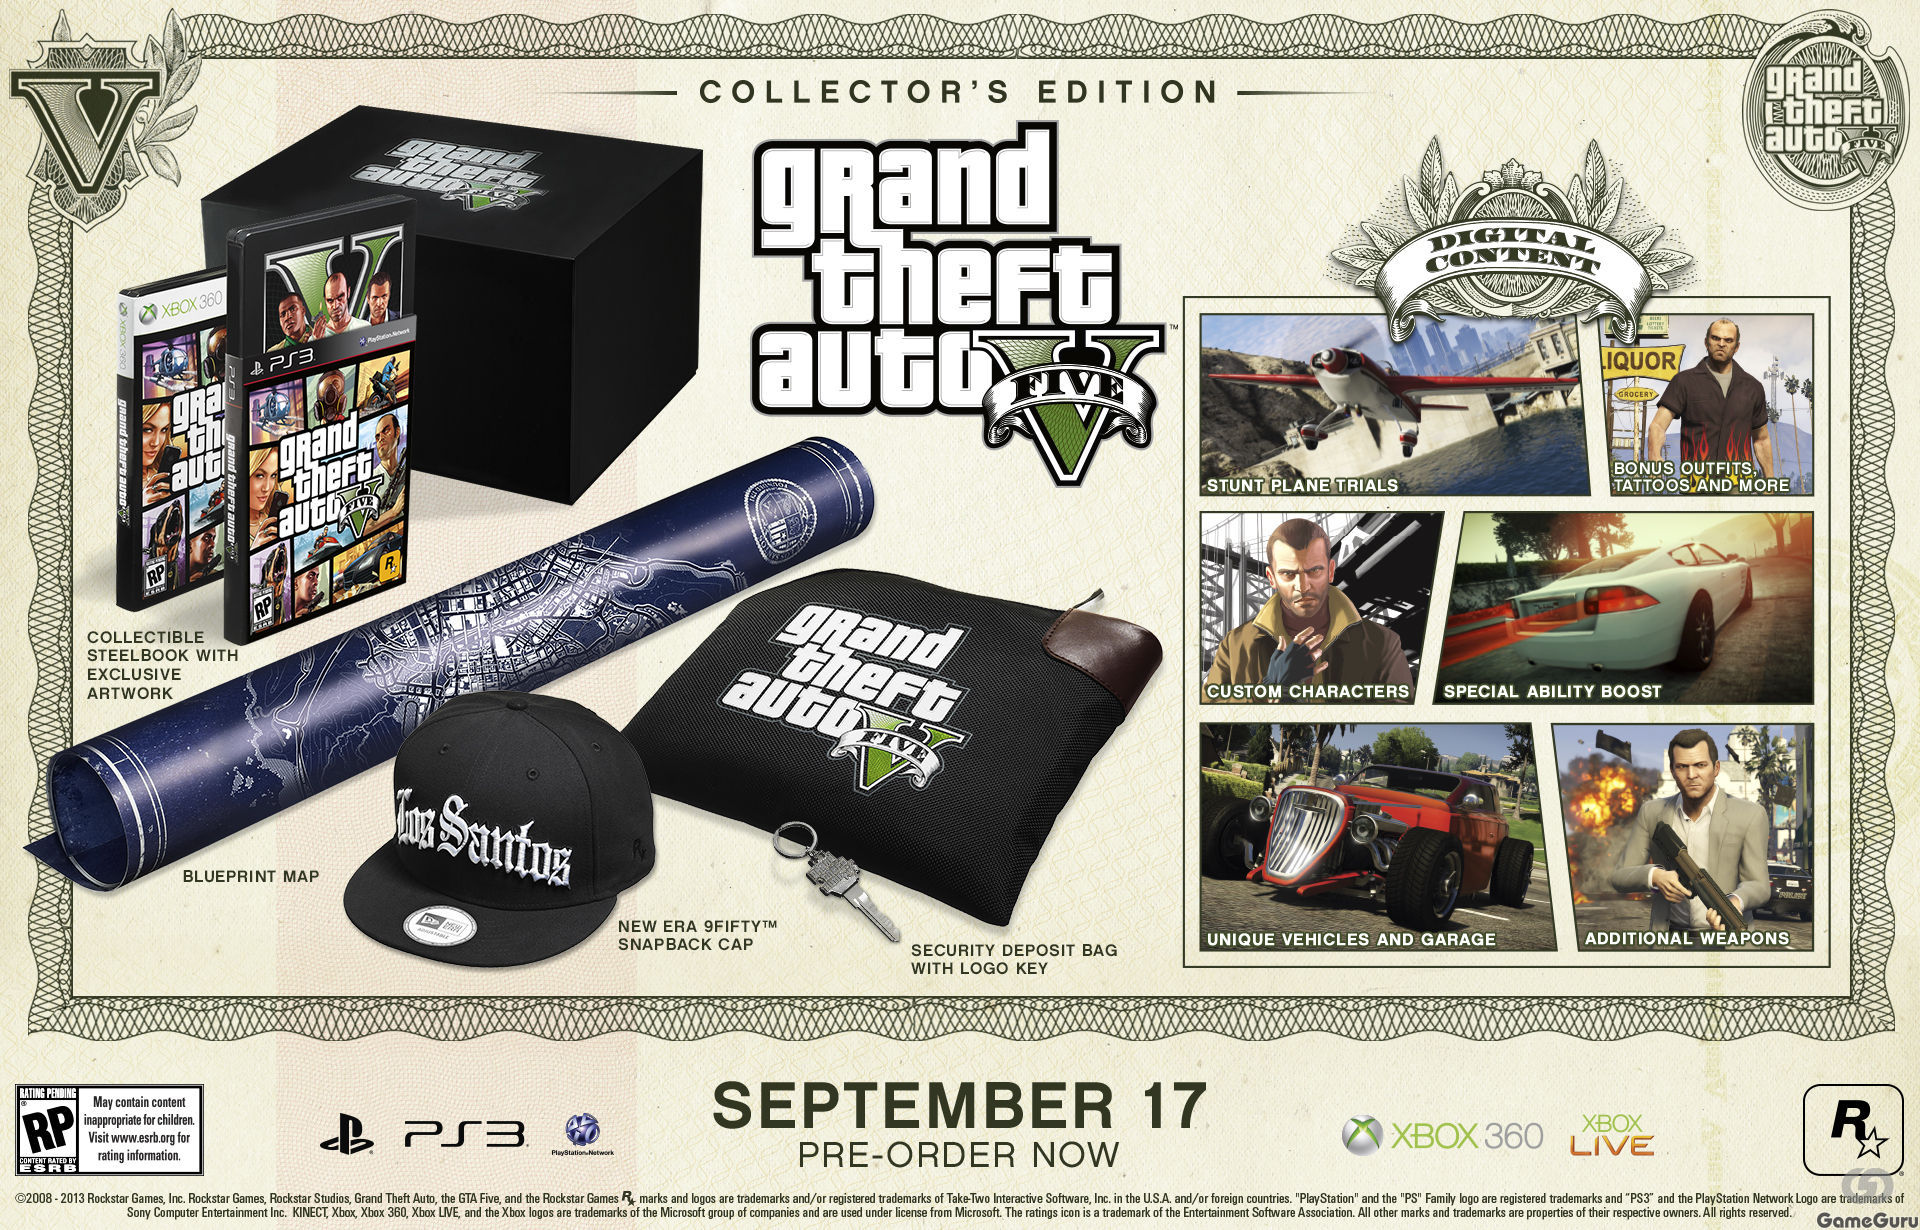 Collector's Edition.